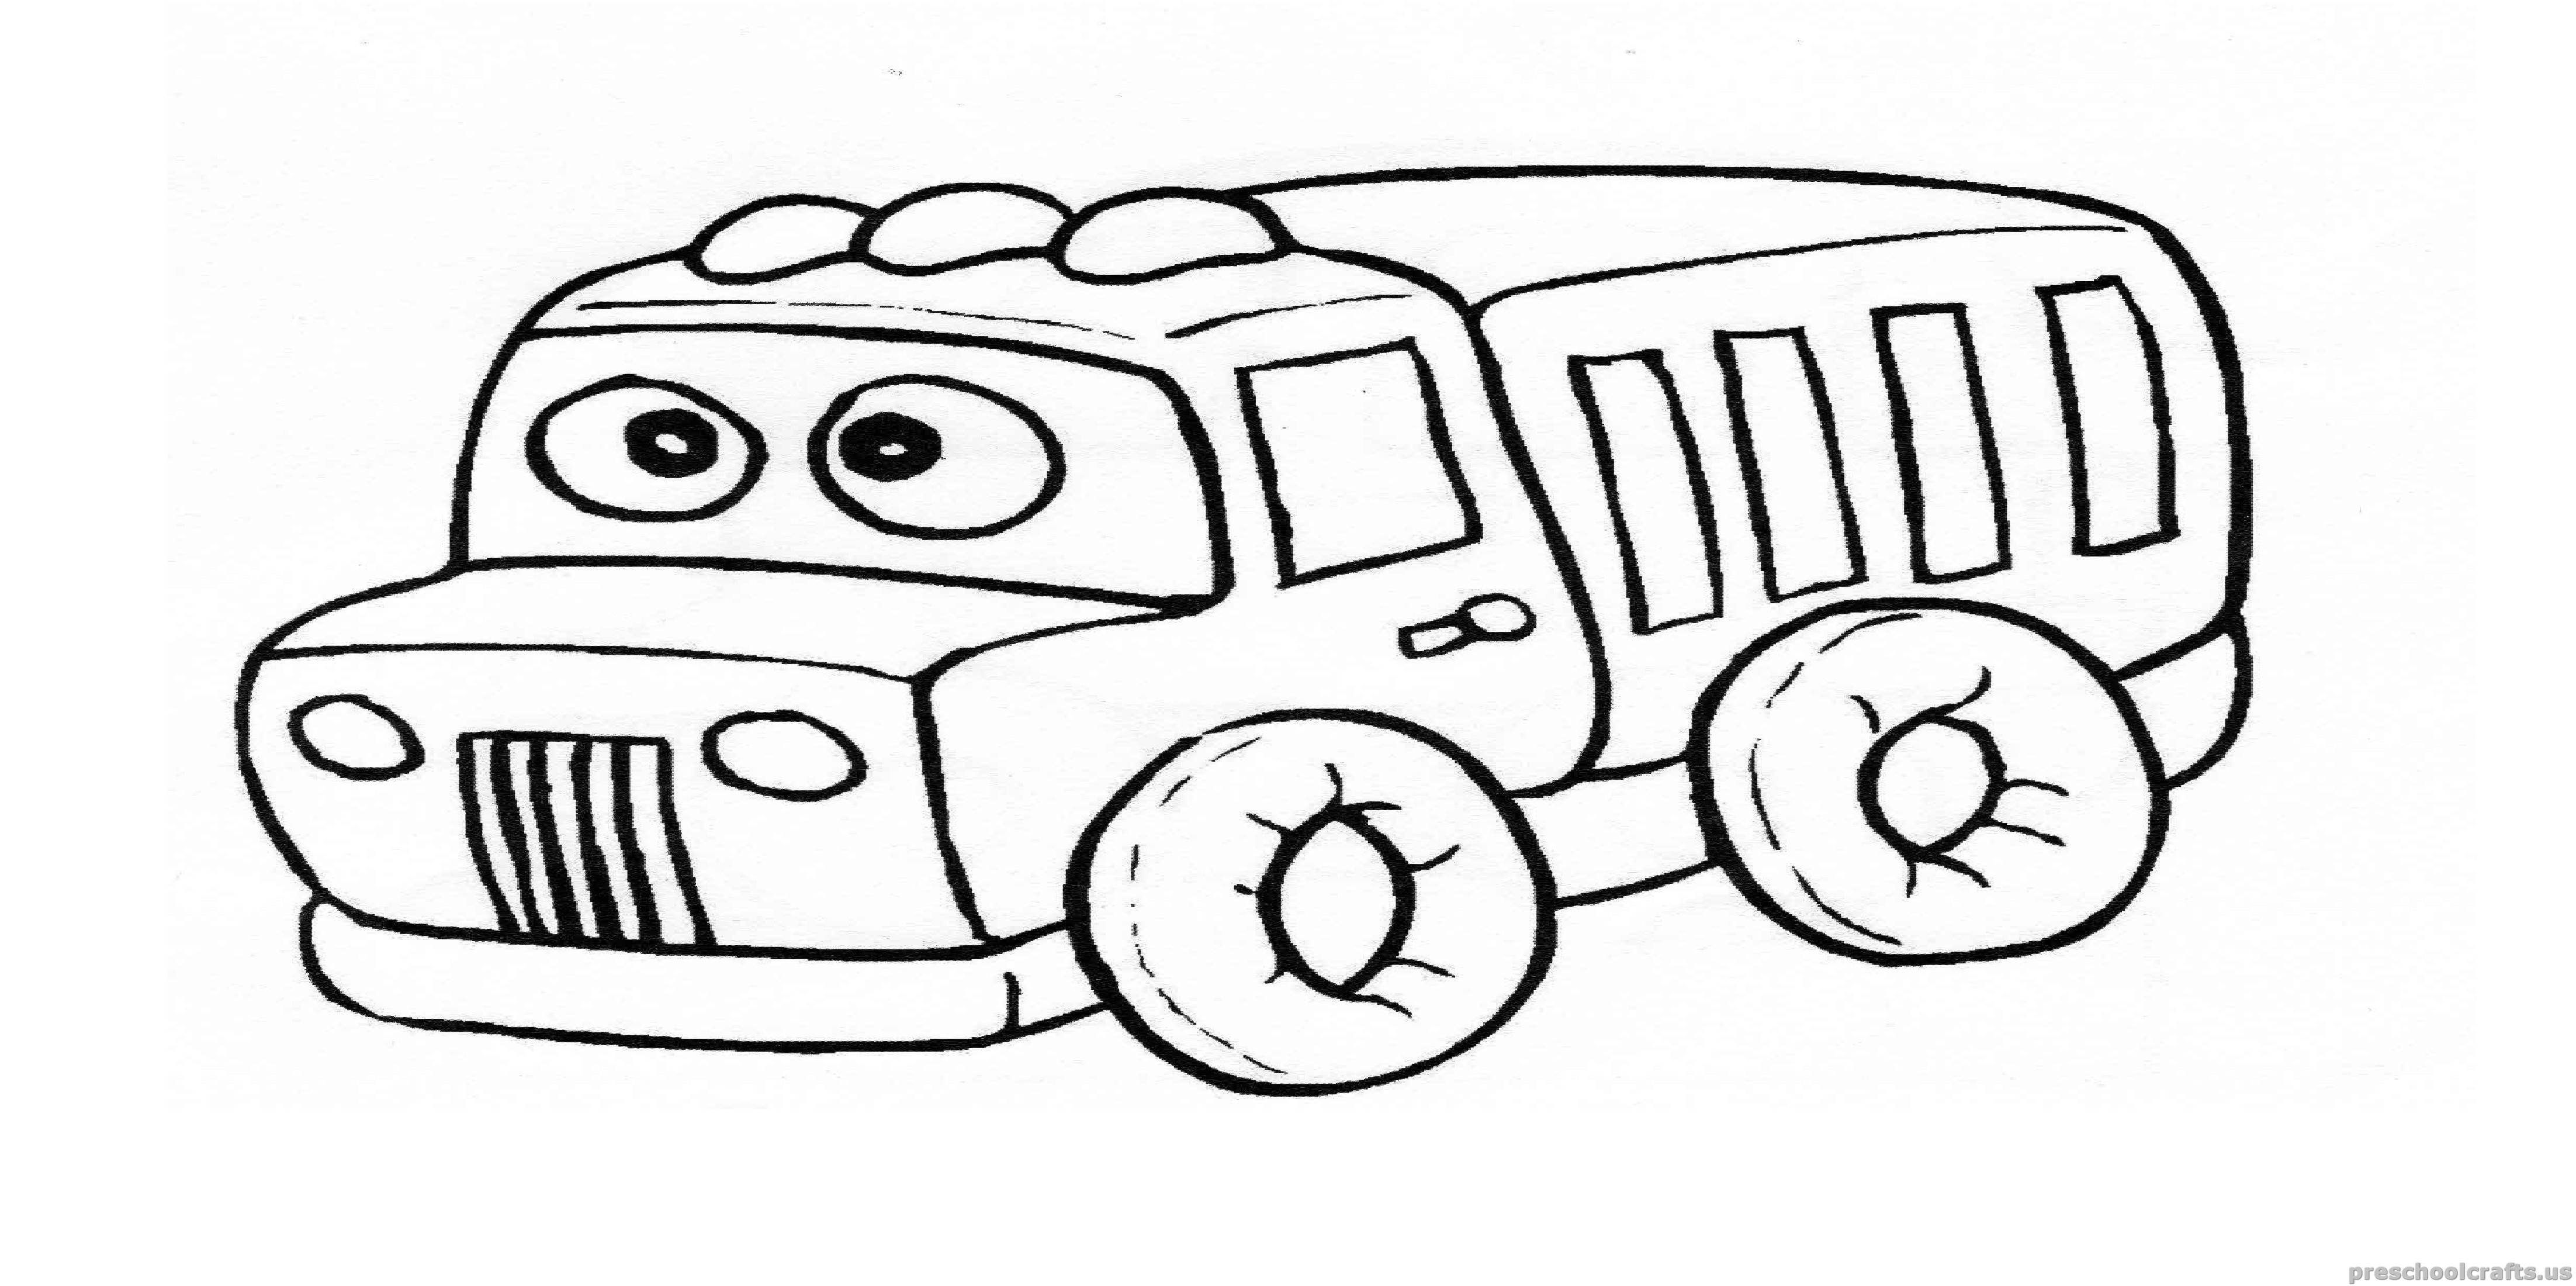 Truck Coloring Page For Preschool And Kindergarten